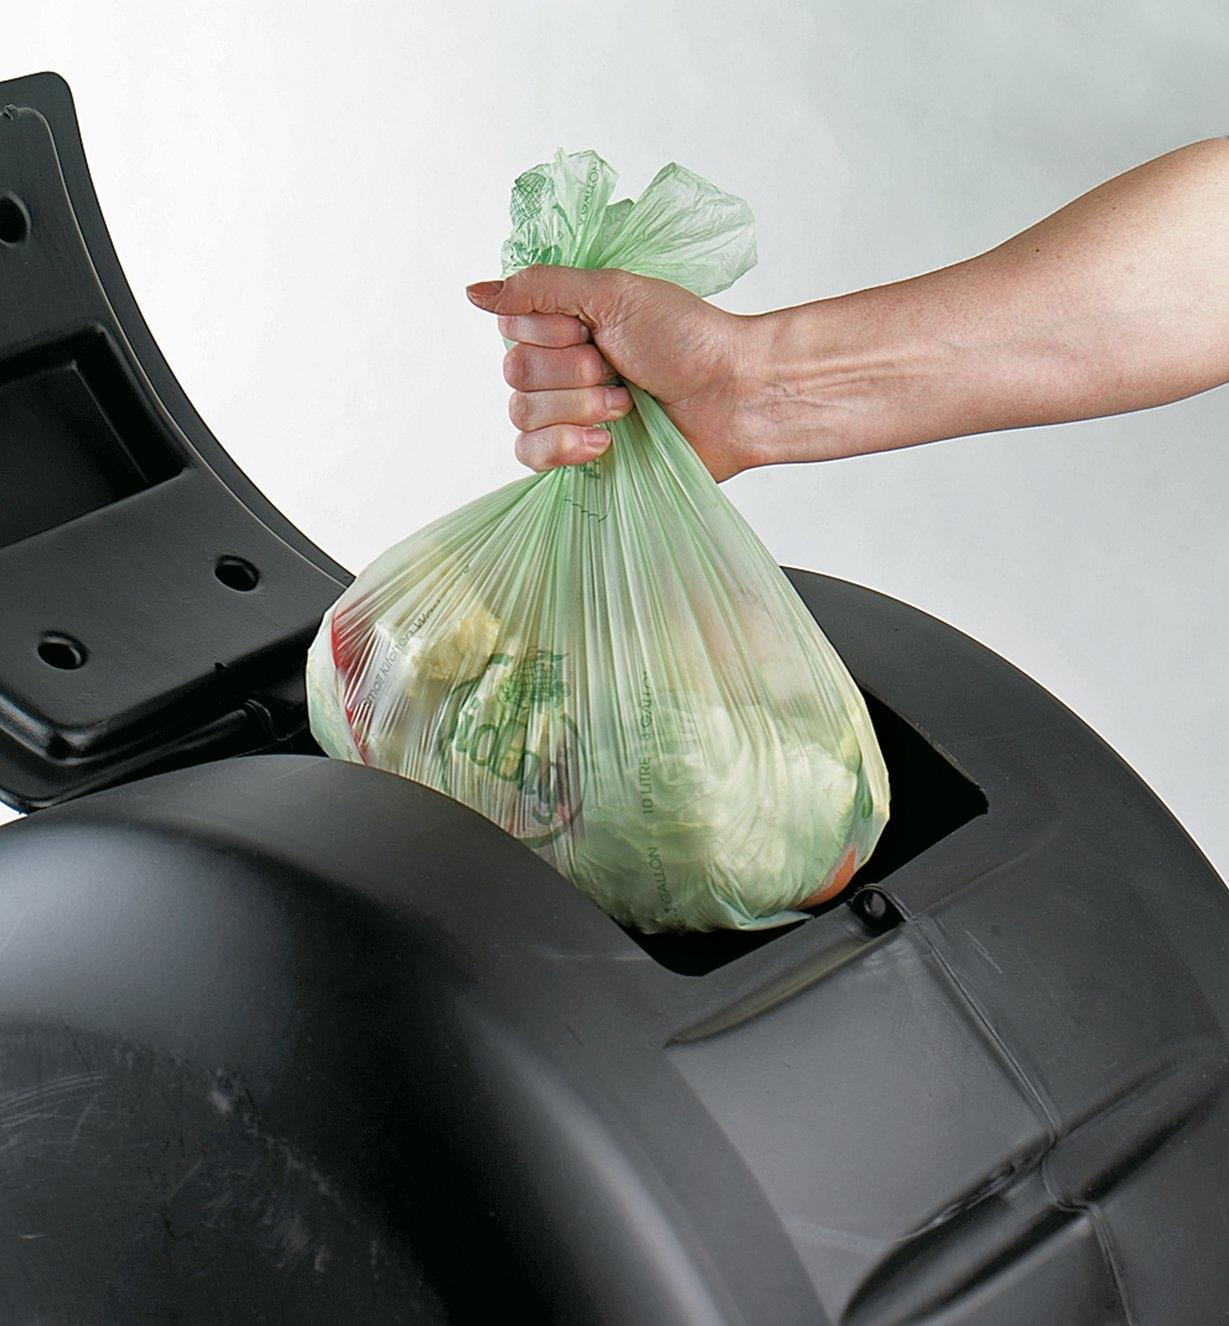 Placing a full compostable bag inside a compost bin